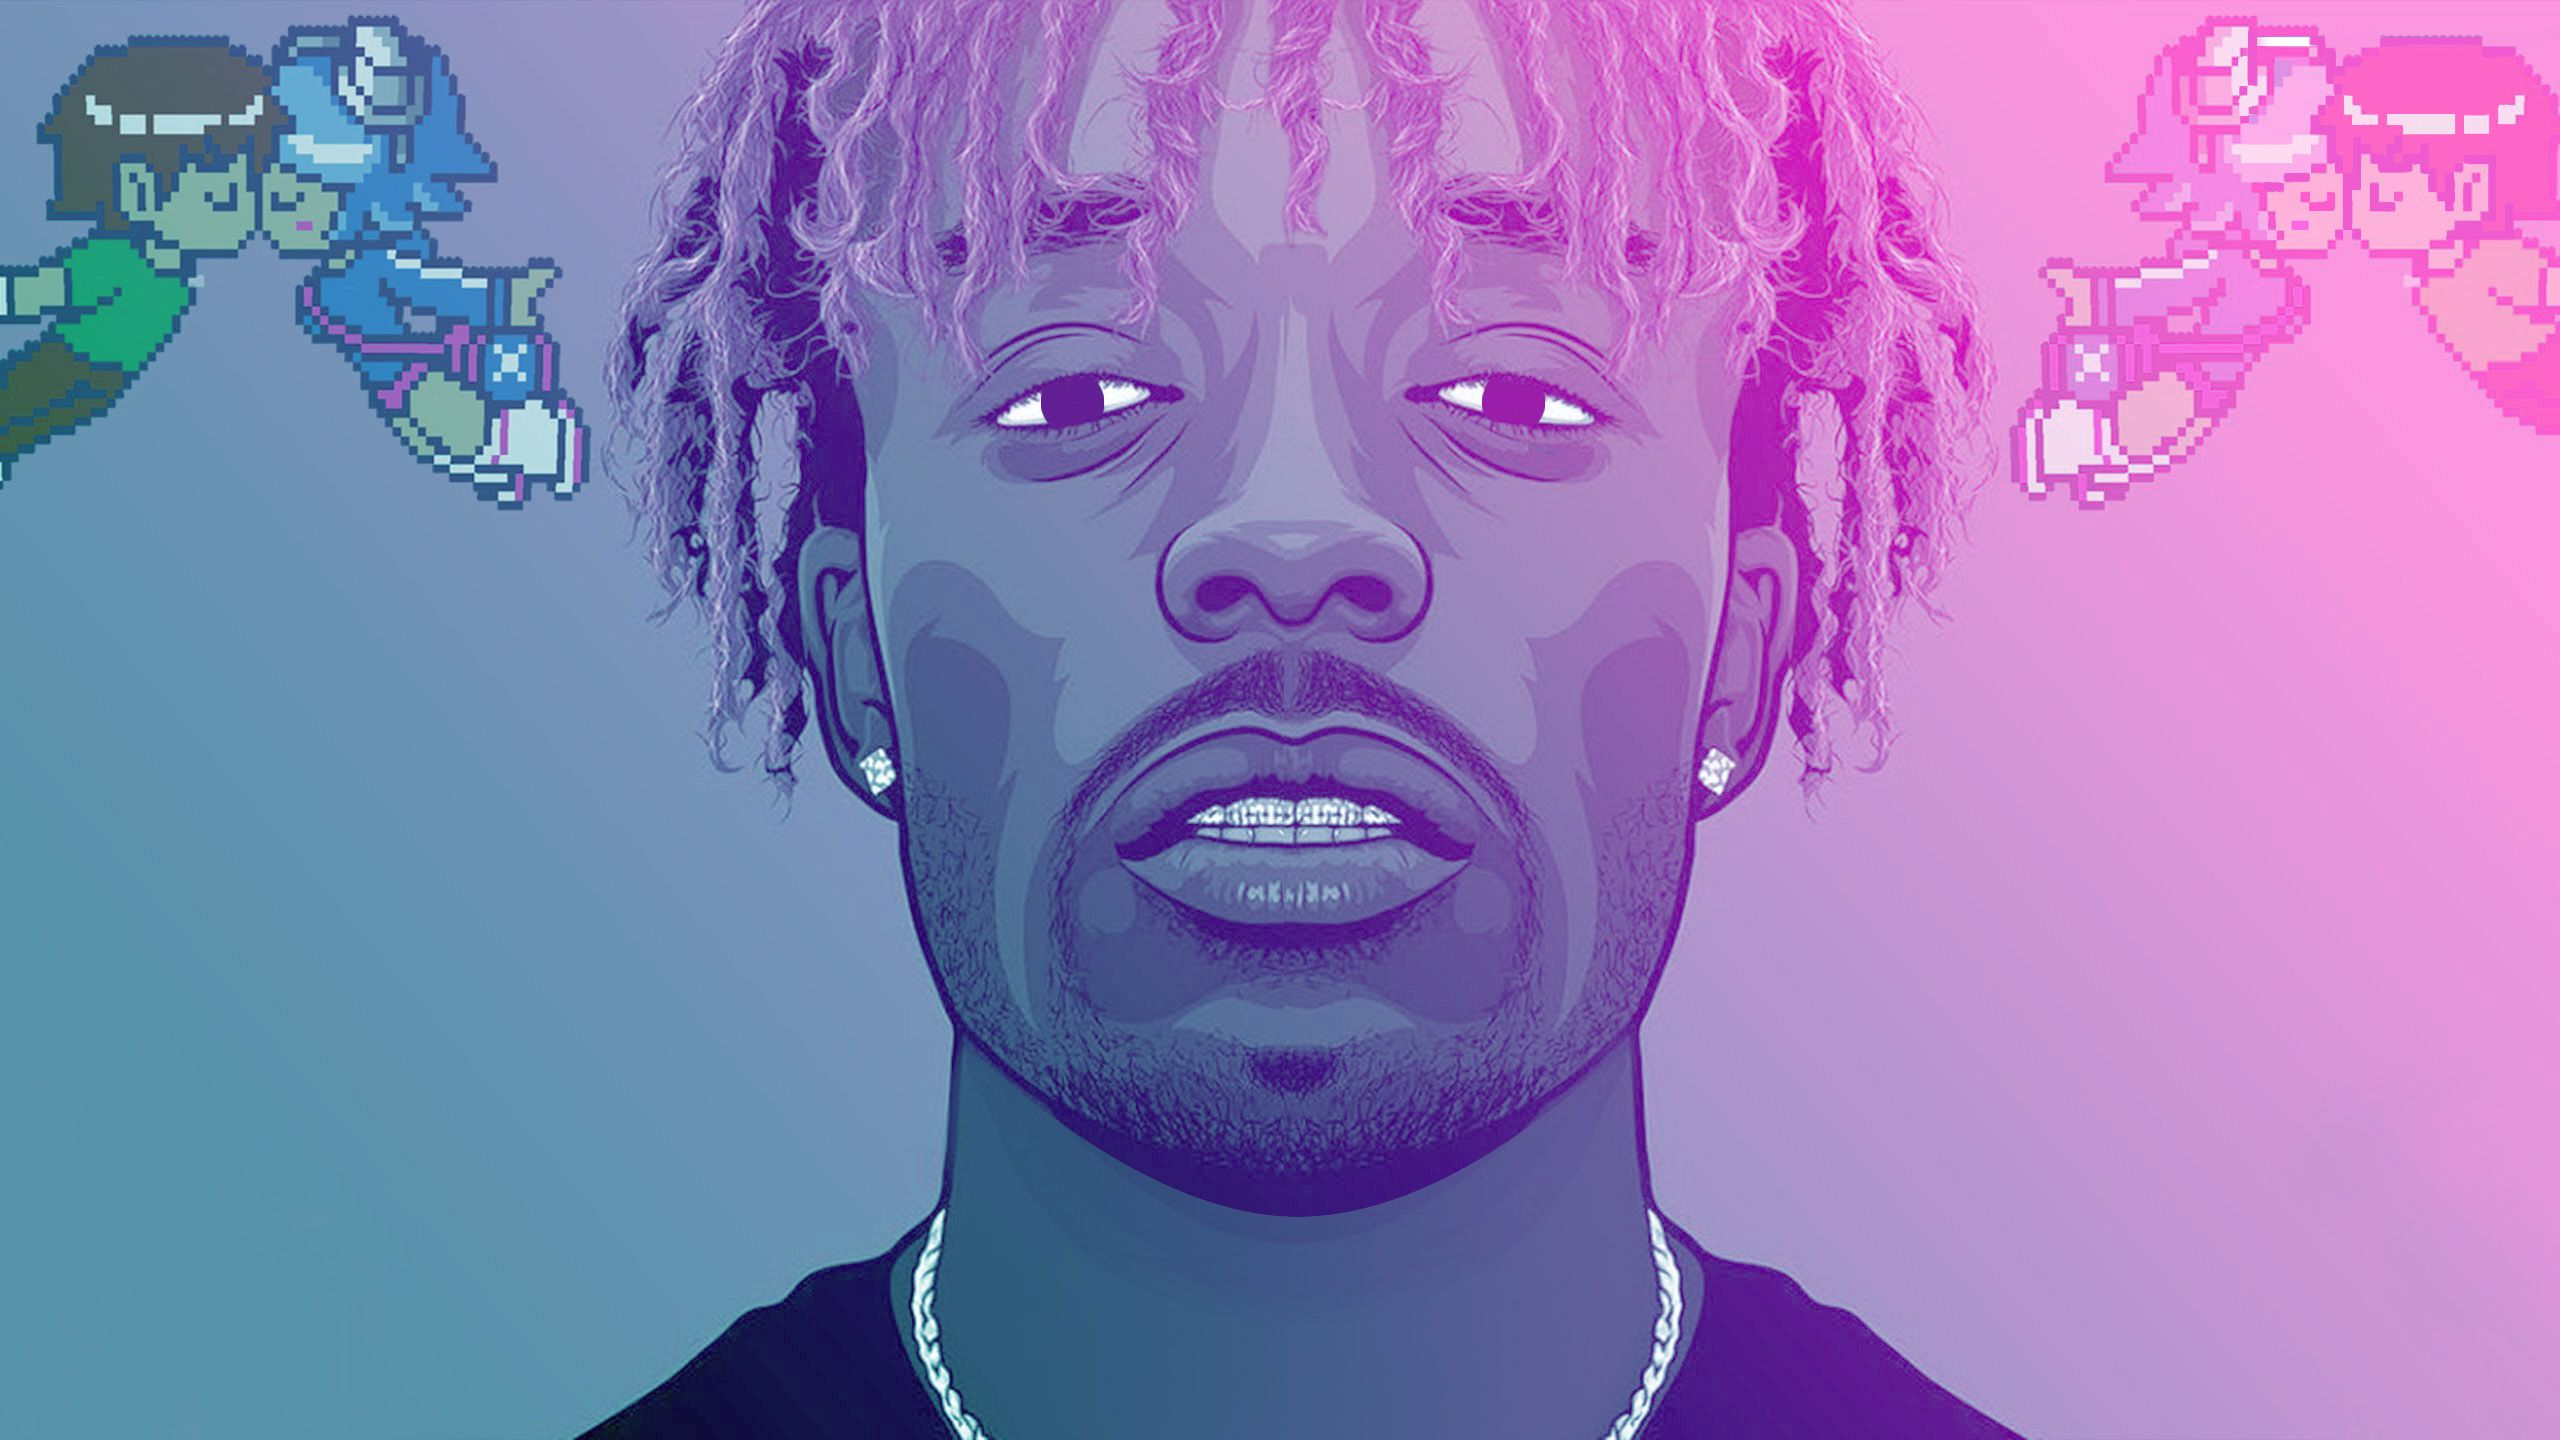 Lil Uzi Vert Wallpapers Top Free Lil Uzi Vert Backgrounds Wallpaperaccess Download the perfect lil uzi vert pictures. lil uzi vert wallpapers top free lil